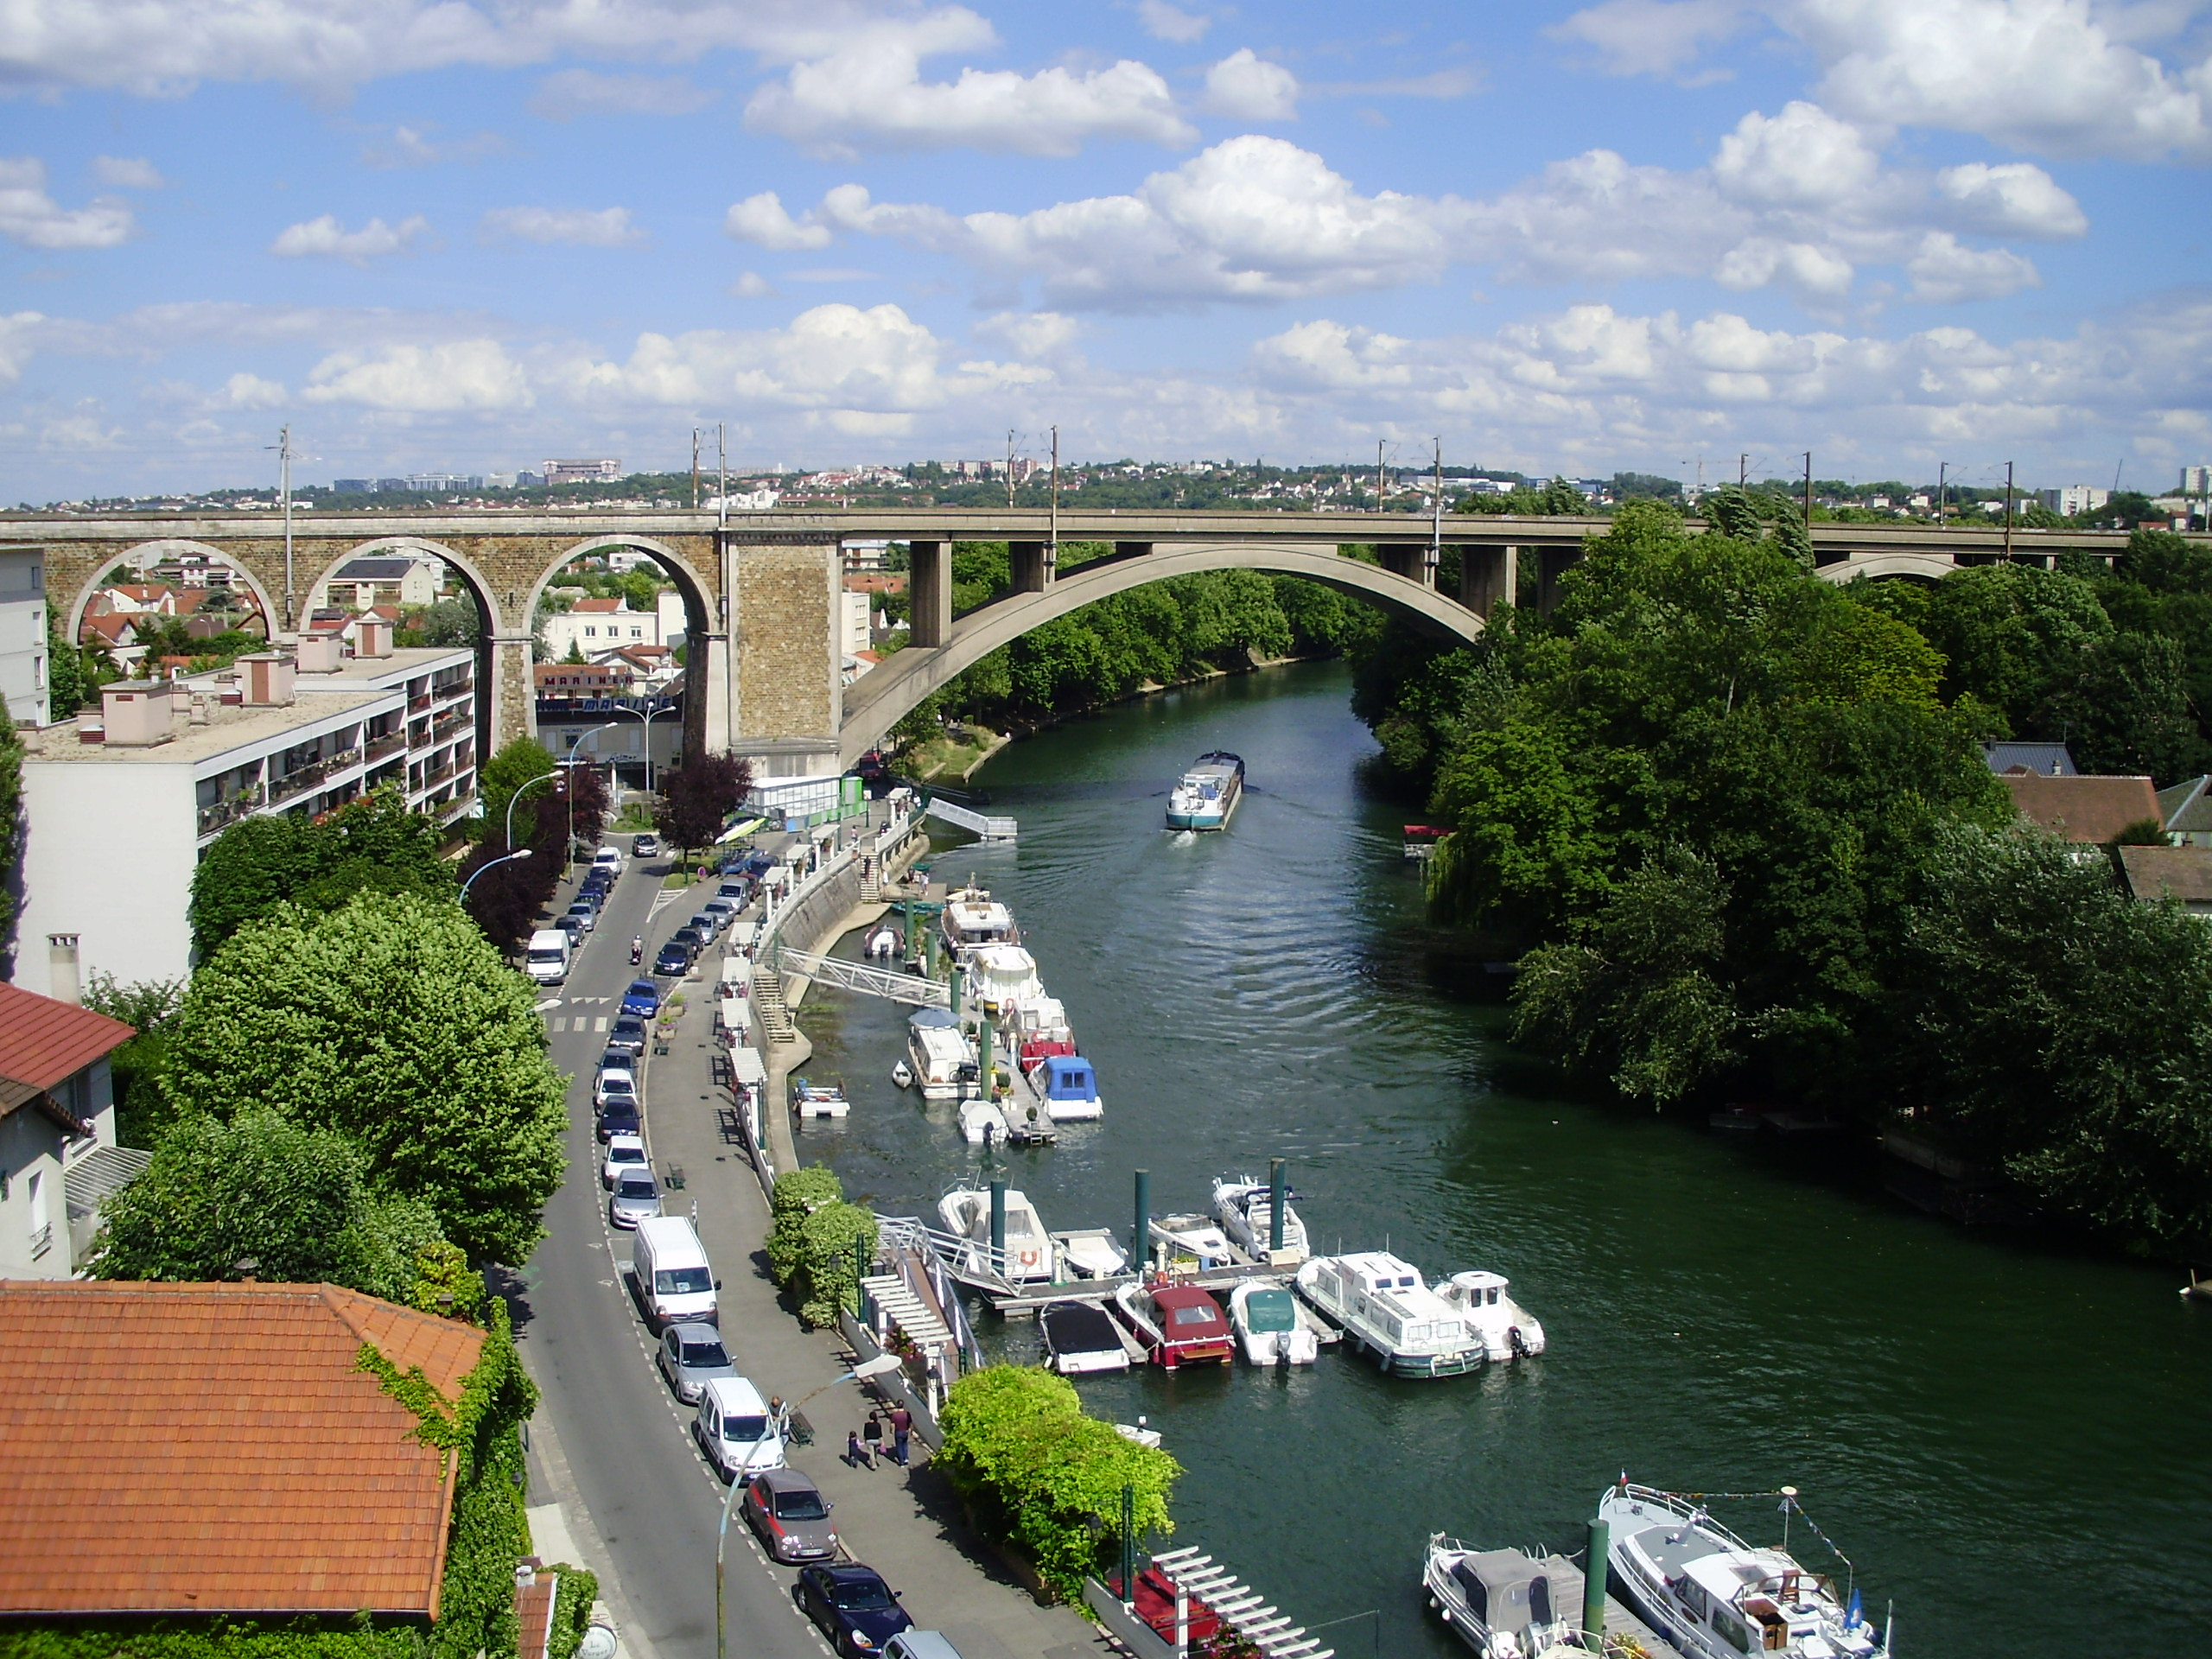 Perreux France  City pictures : The railway bridge in le Perreux, France